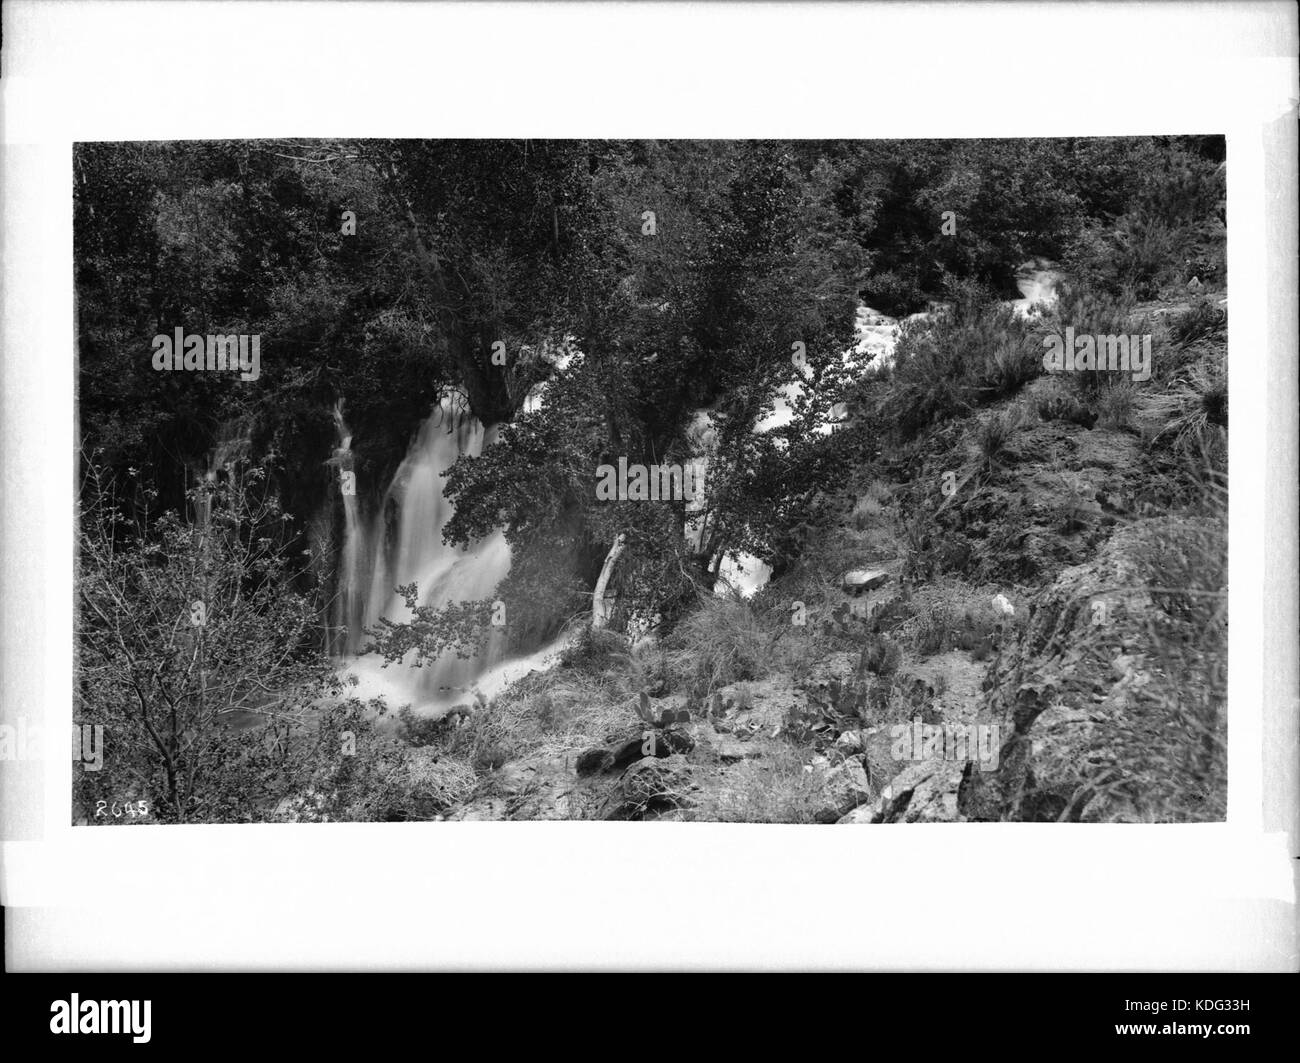 Navajo Falls in Cataract (Havasu) Canyon, Arizona (CHS 2645)